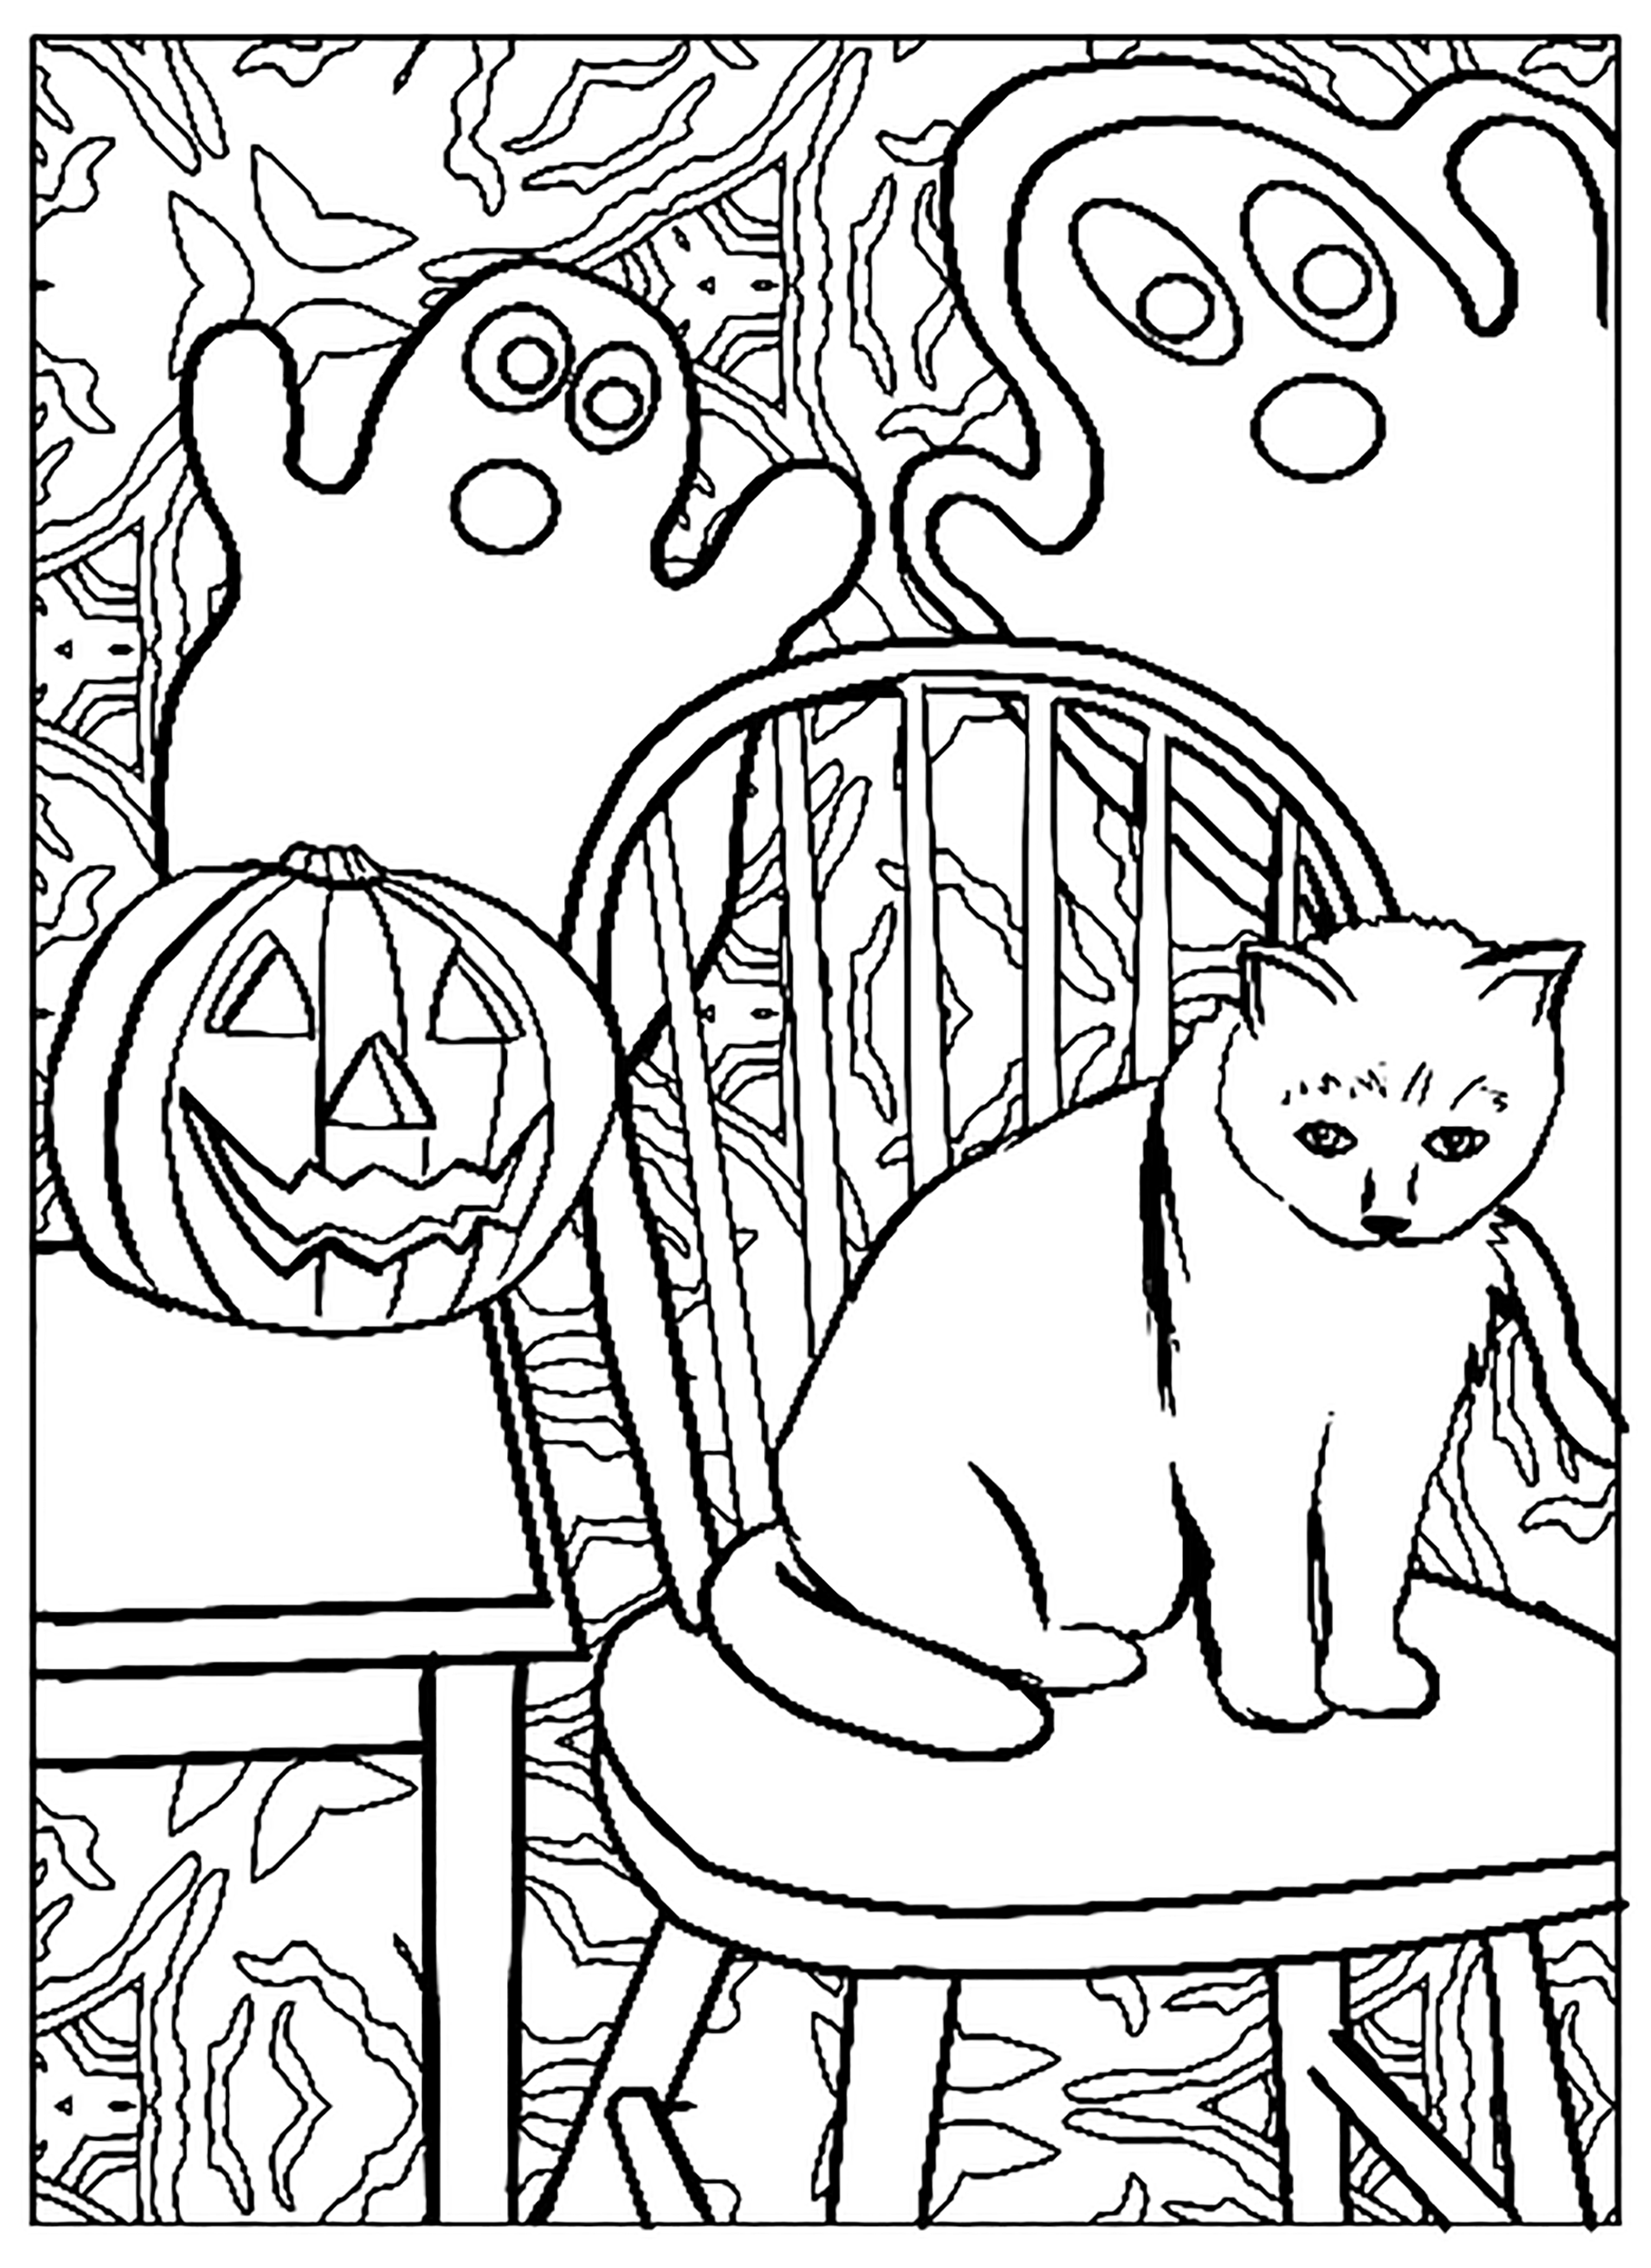 Funny Cats coloring page for kids : Cat and ghosts !